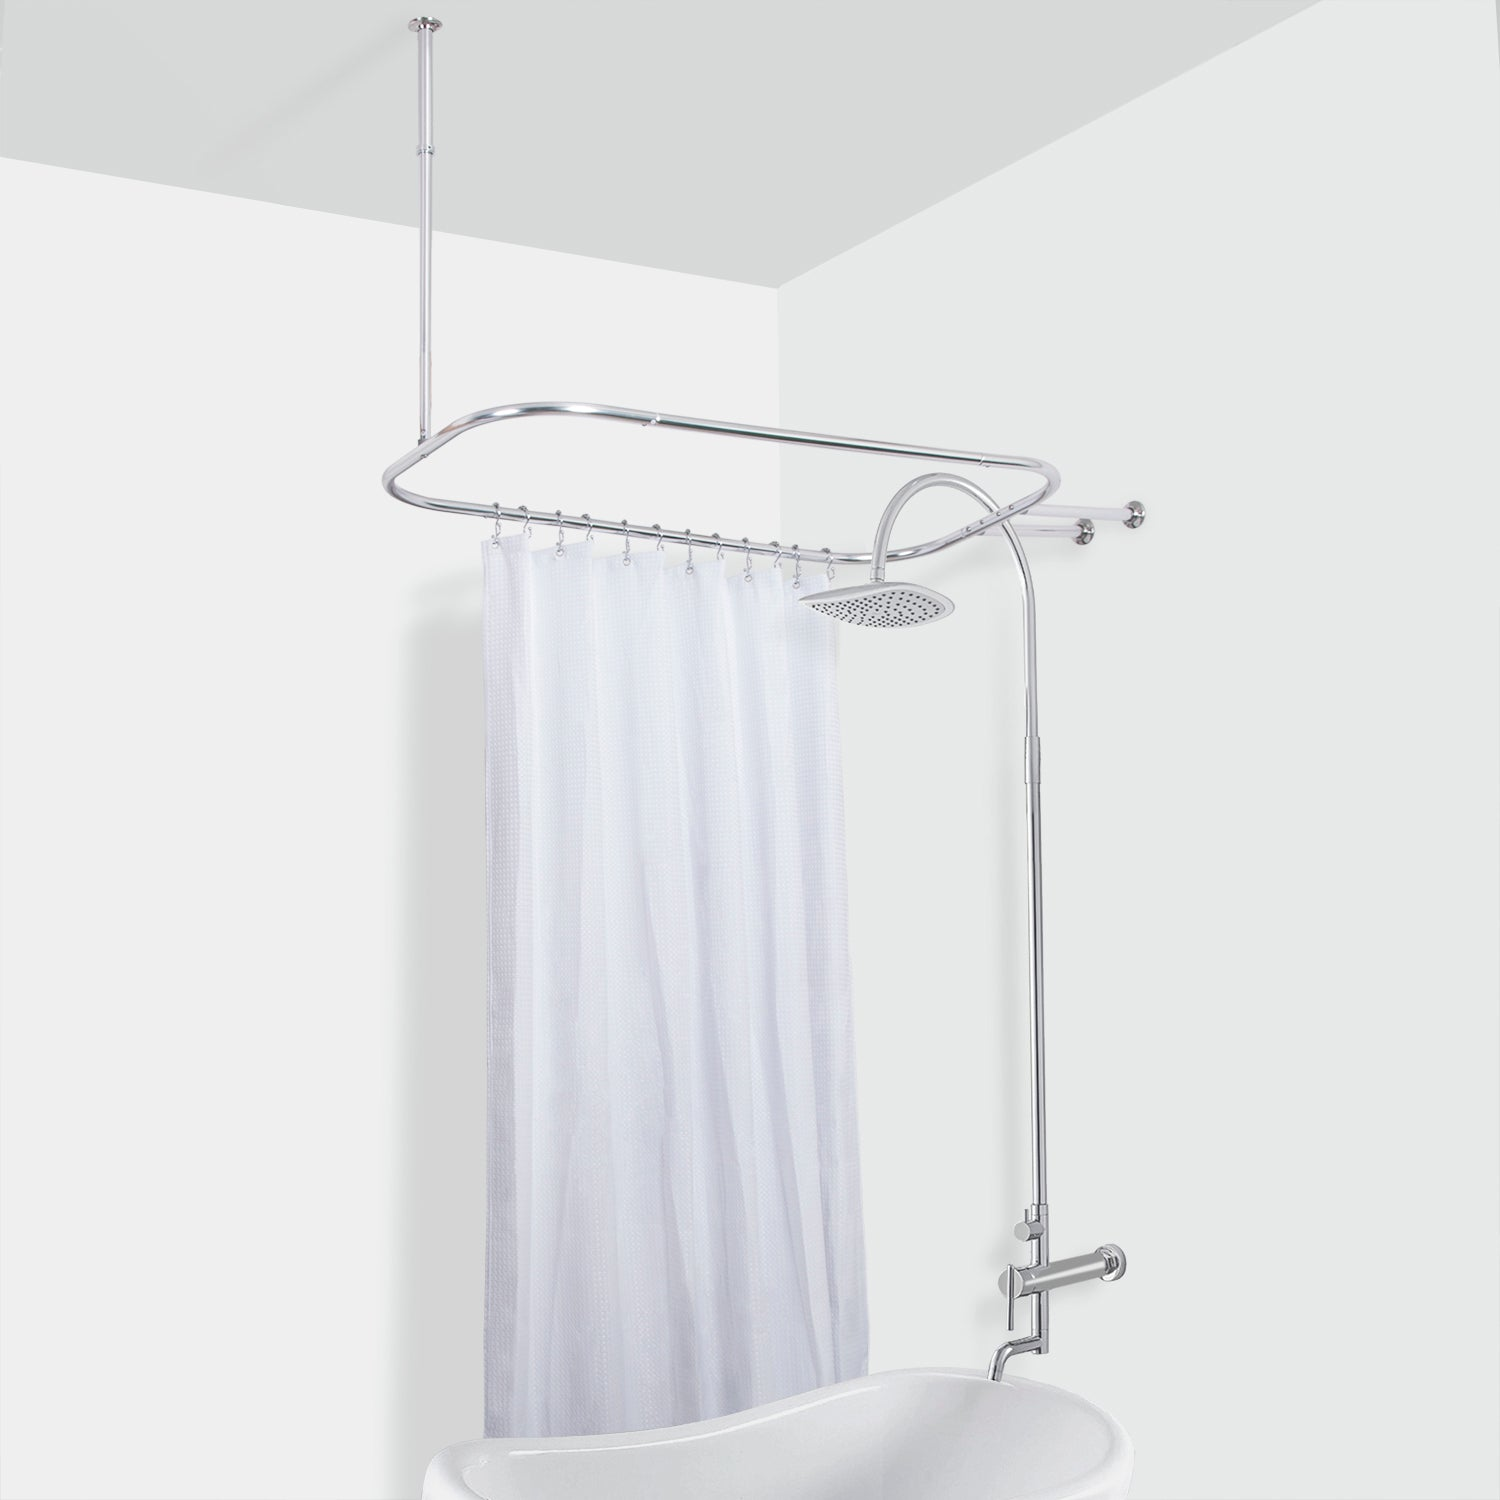 Rustproof Hoop Shower Rod For Clawfoot Tub  Utopia Alley